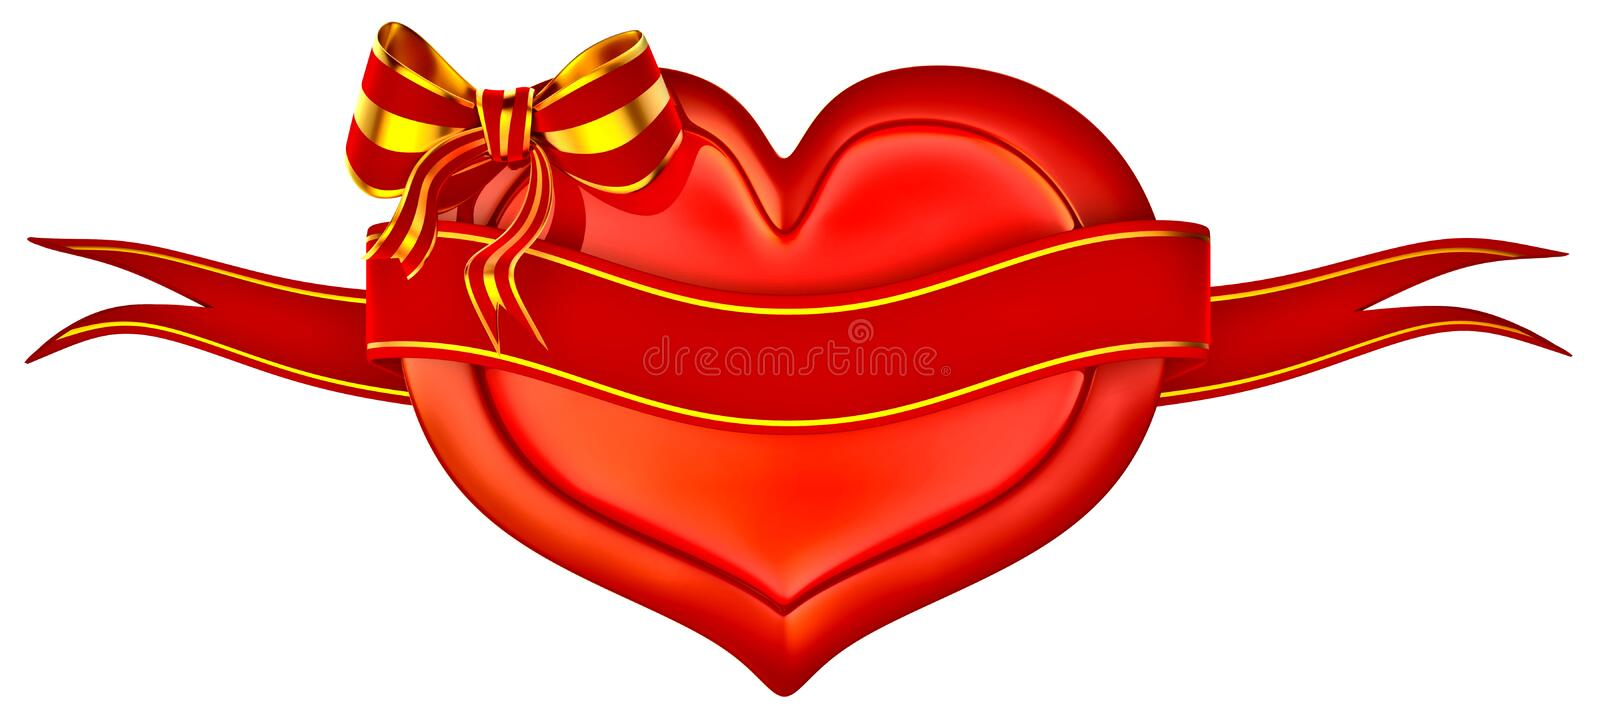 3D Heart With Bow And Ribbon Royalty Free Stock Photography